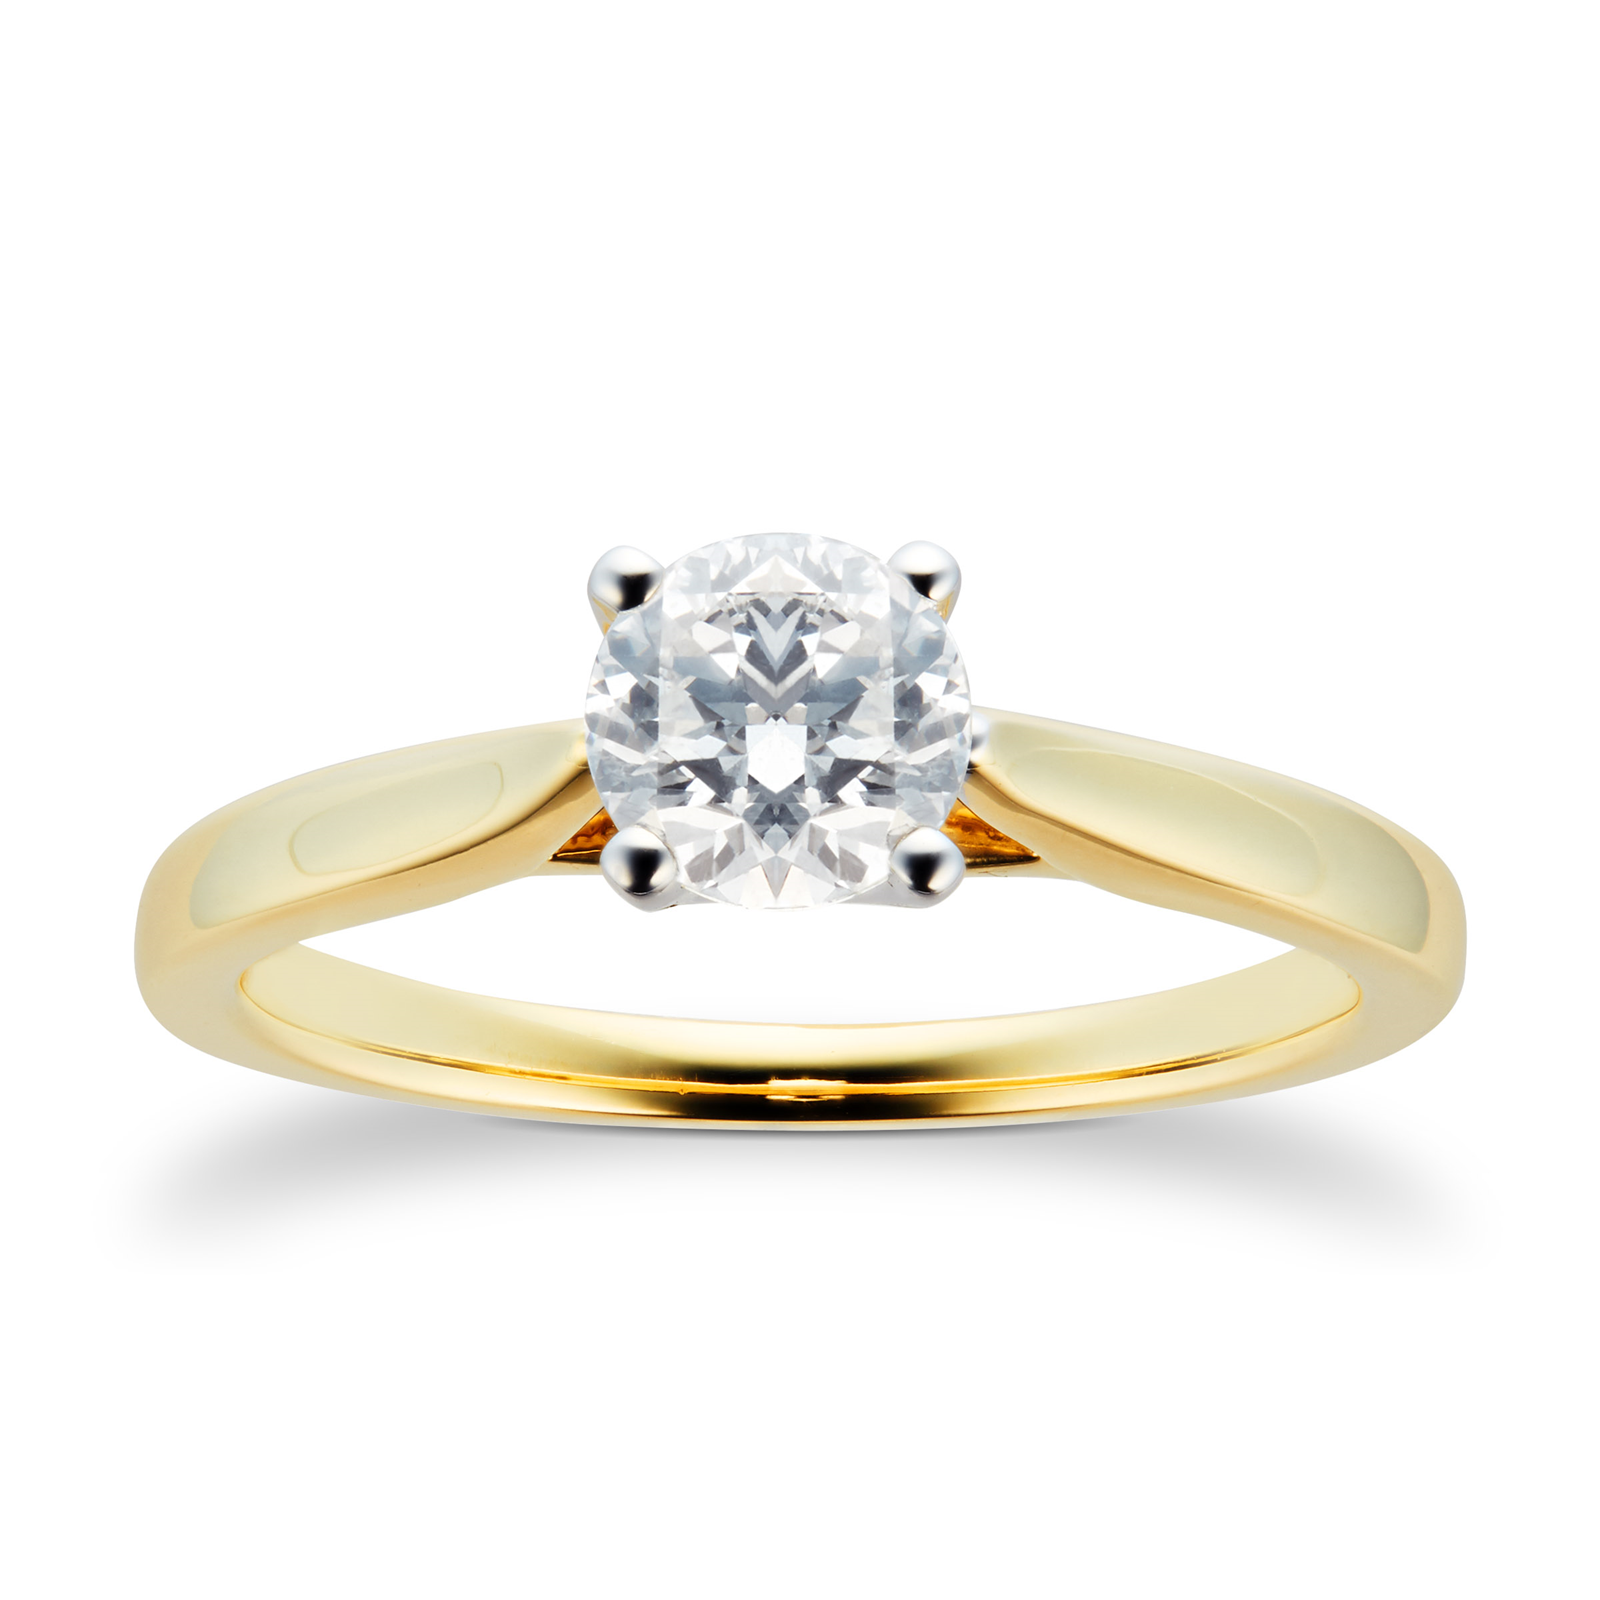 18ct Yellow Gold Brilliant Cut 0.70 Carat 88 Facet Diamond Ring